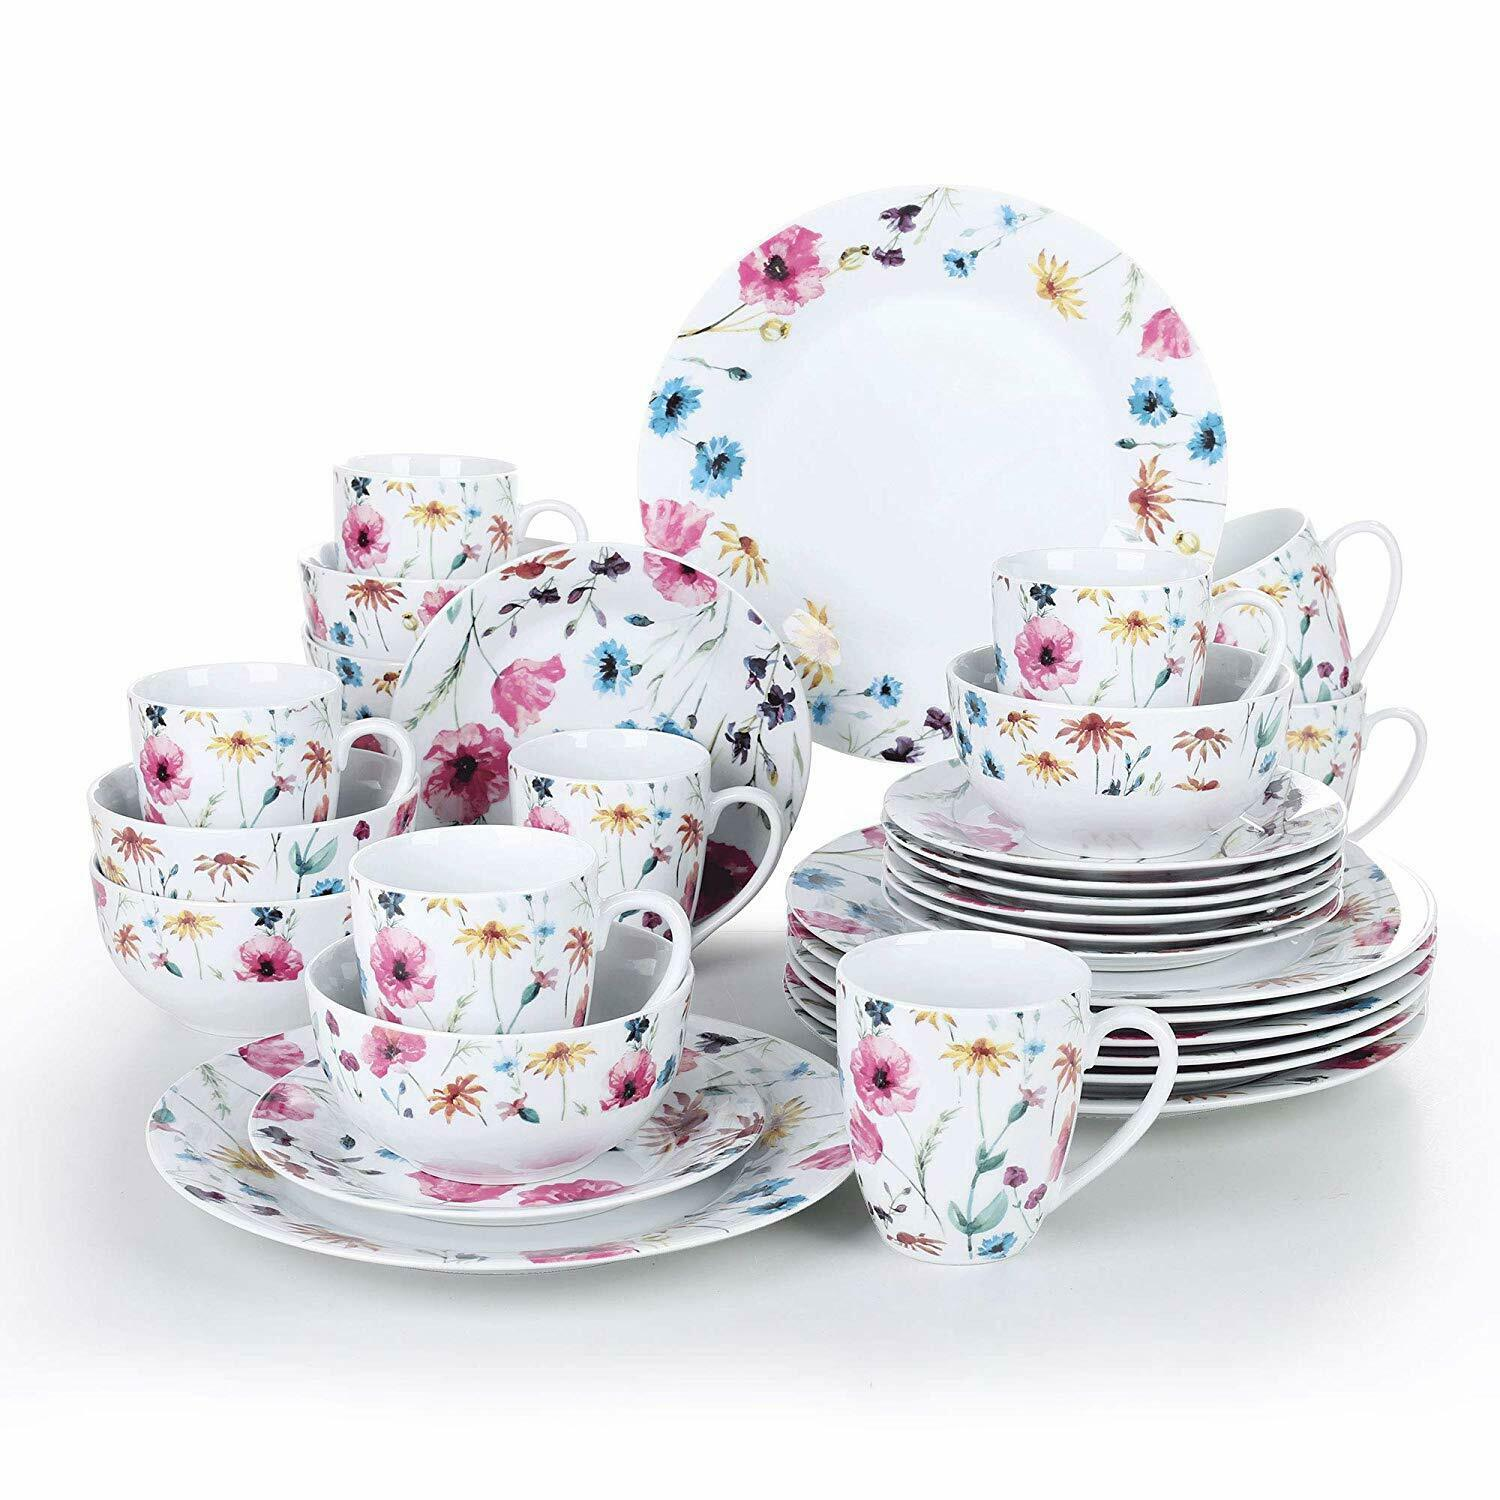 32 Piece Porcelain Dinner Set Plates Bowl Mugs Crockery Dining Set Floral Print